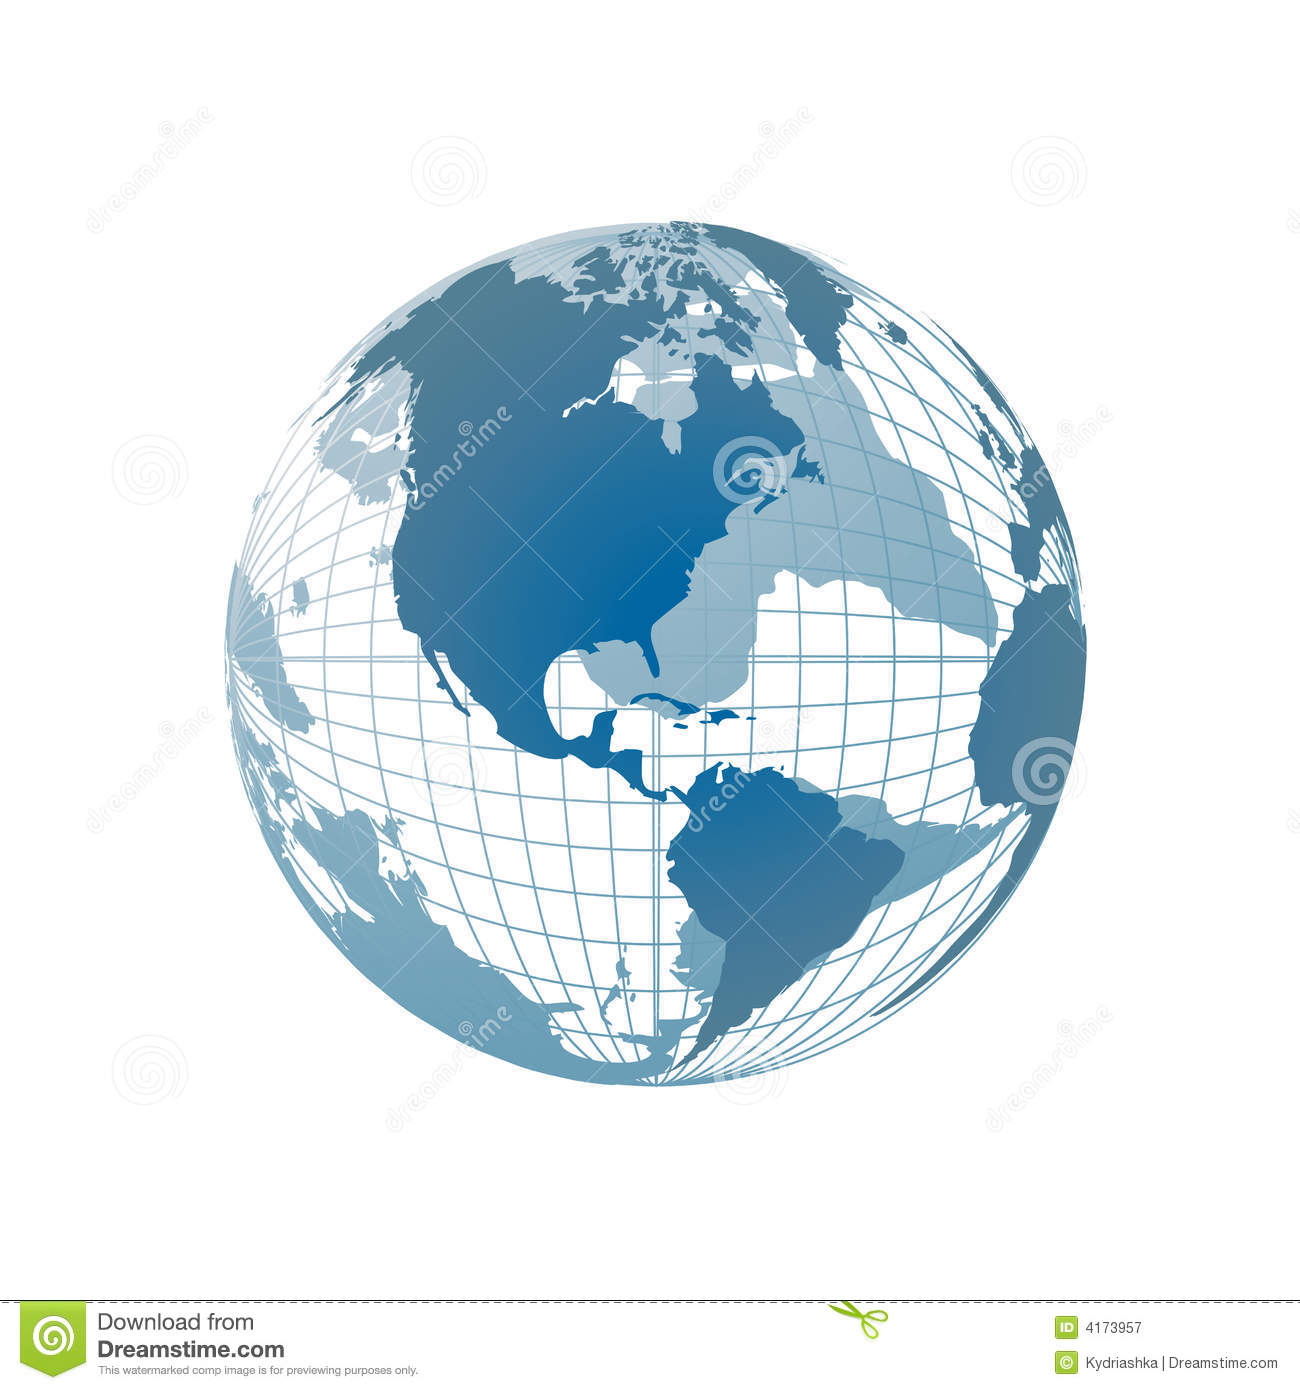 World map 3d globe stock vector illustration of continents 4173957 world map 3d globe gumiabroncs Choice Image